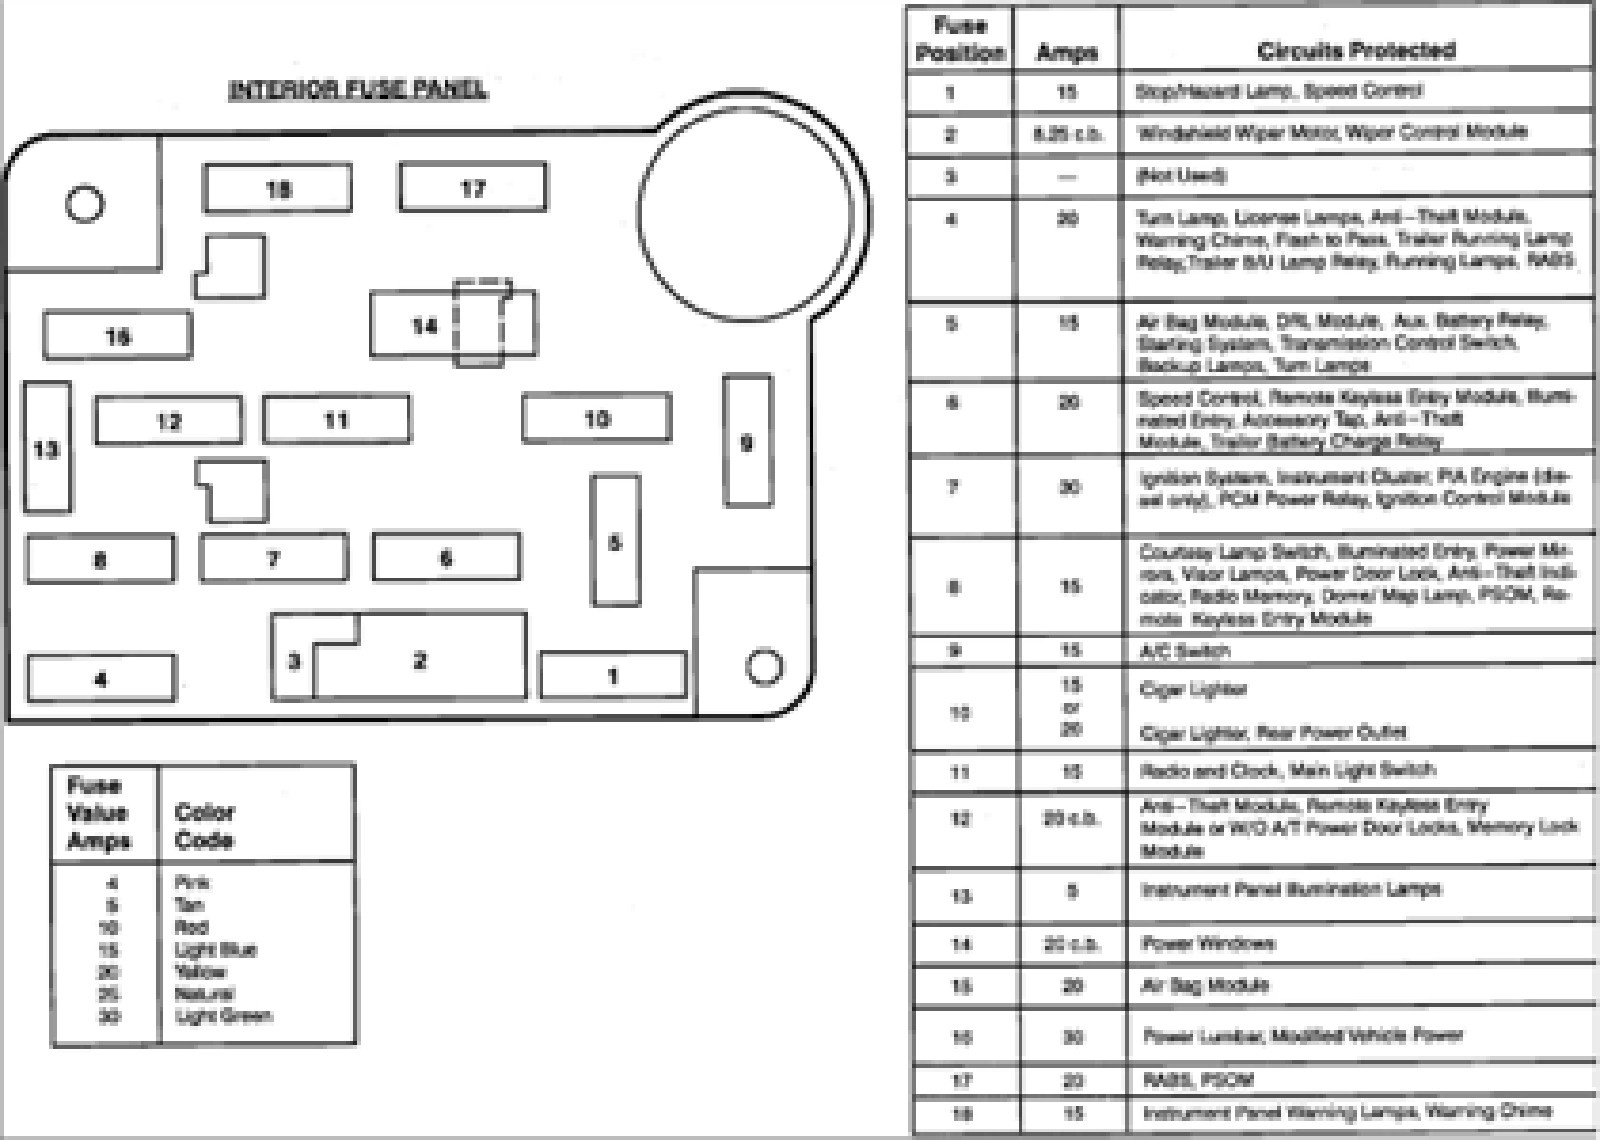 diagram of fuse box 1997 ford pick up search for wiring diagrams u2022 rh idijournal com Ford F-150 Fuse Box Diagram Ford E-350 Fuse Box Diagram